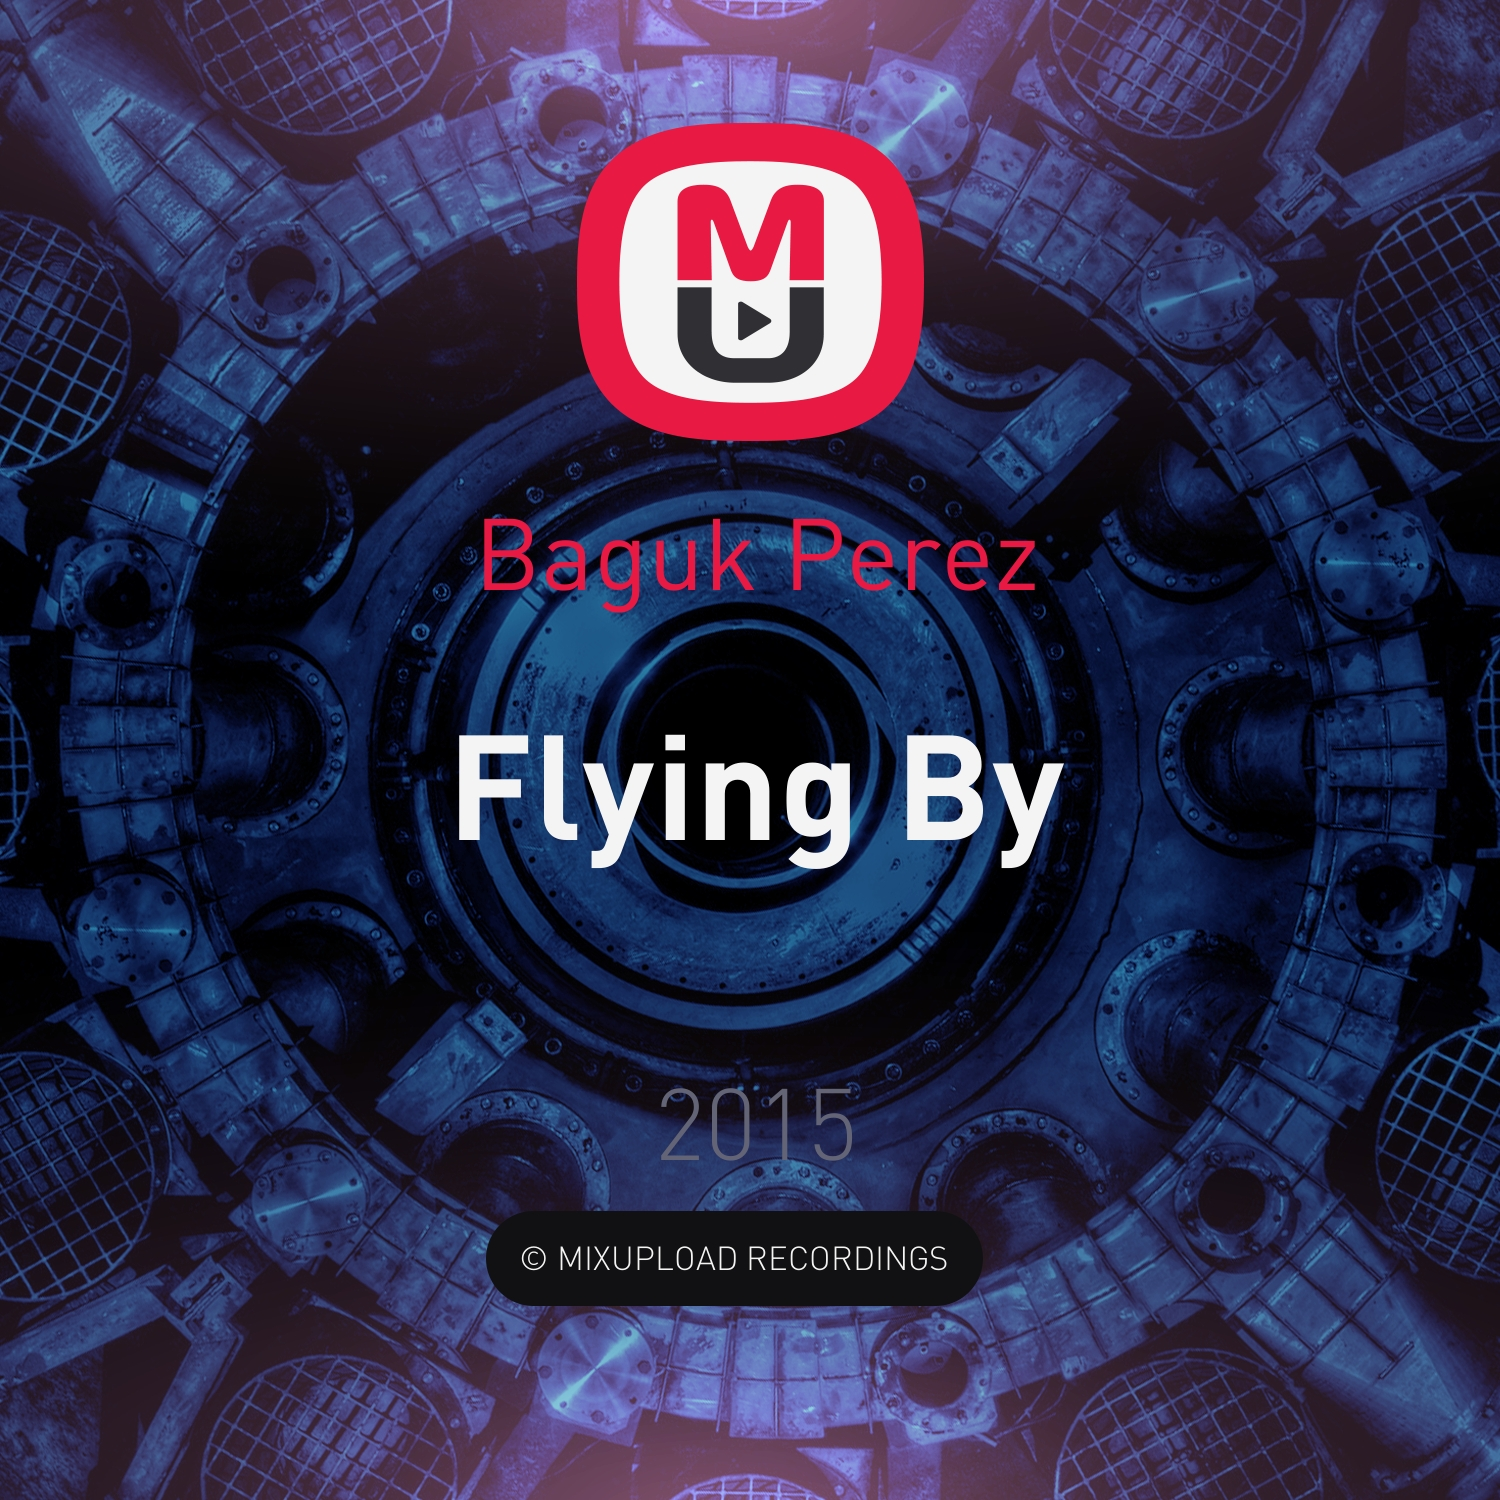 Baguk Perez - Flying By (Original mix) (original)